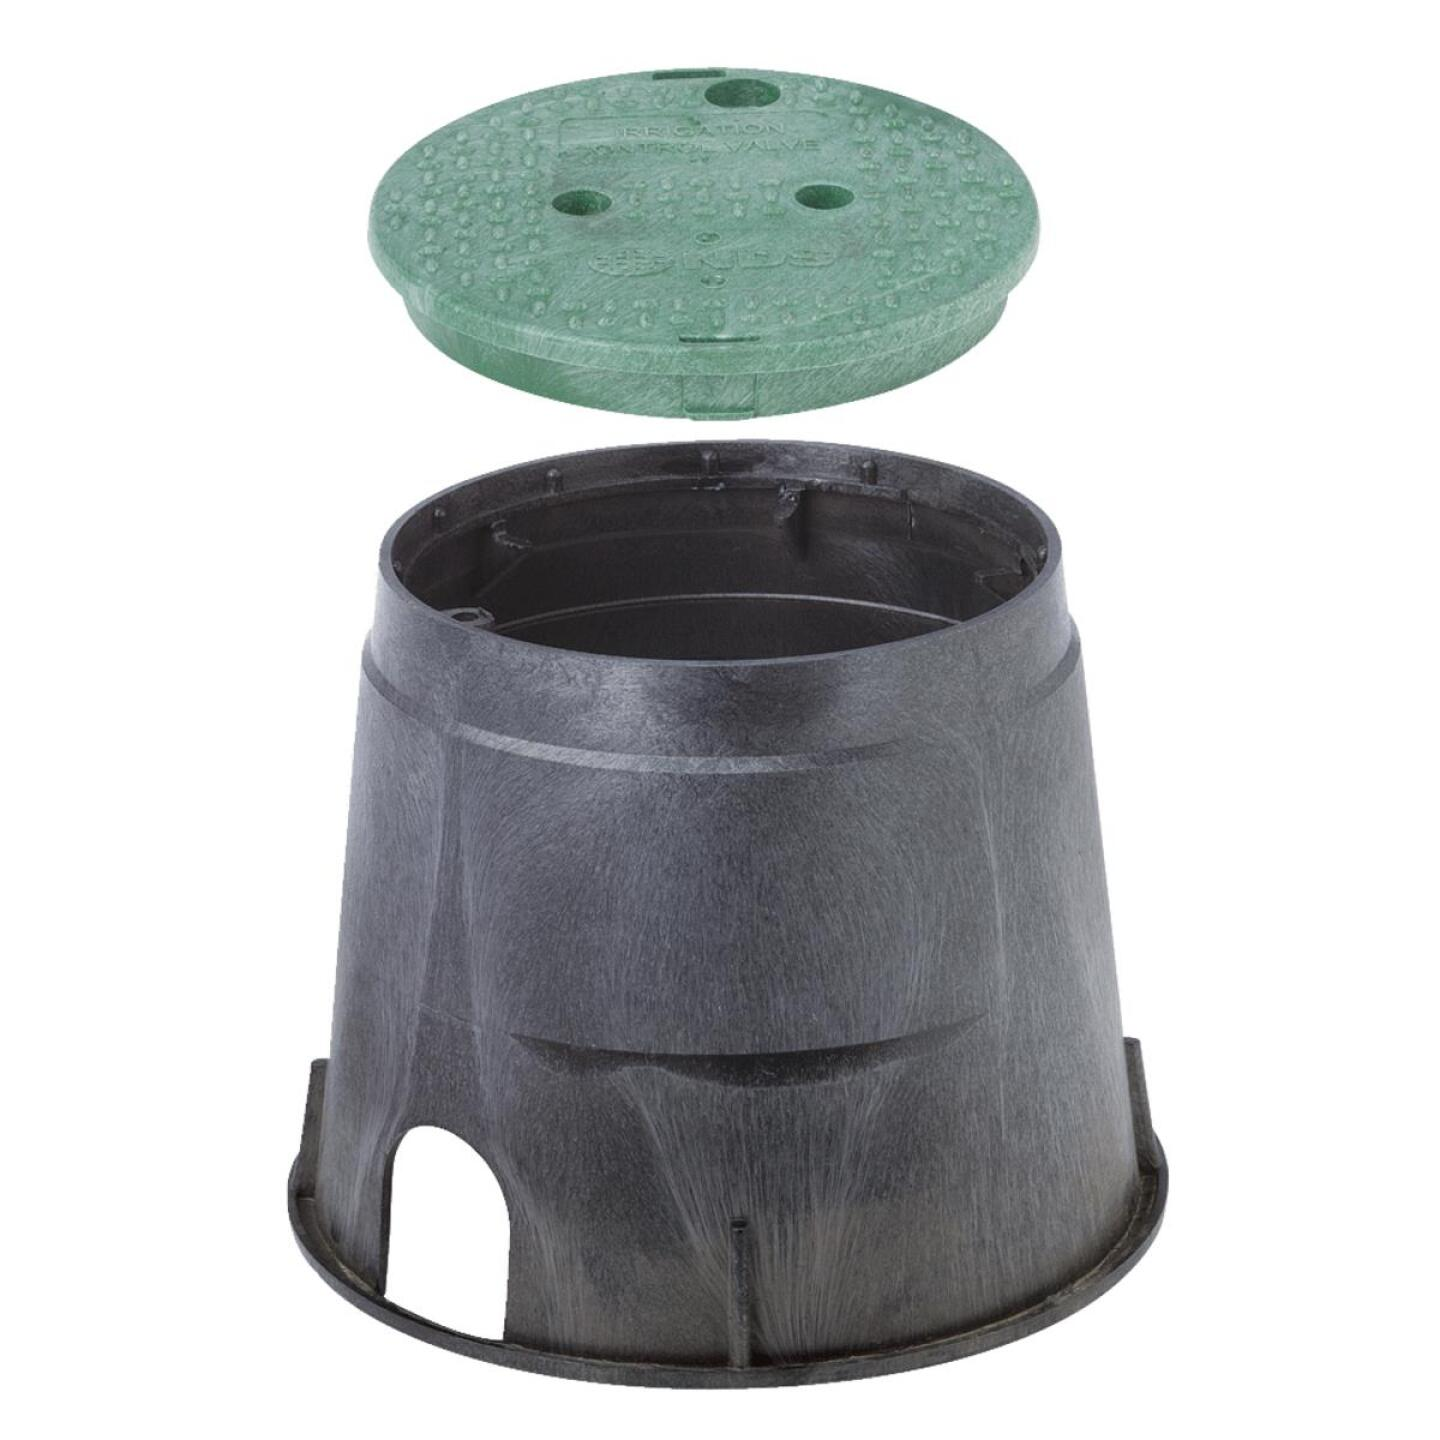 National Diversified 10 In. Round Black & Green Valve Box with Cover Image 1